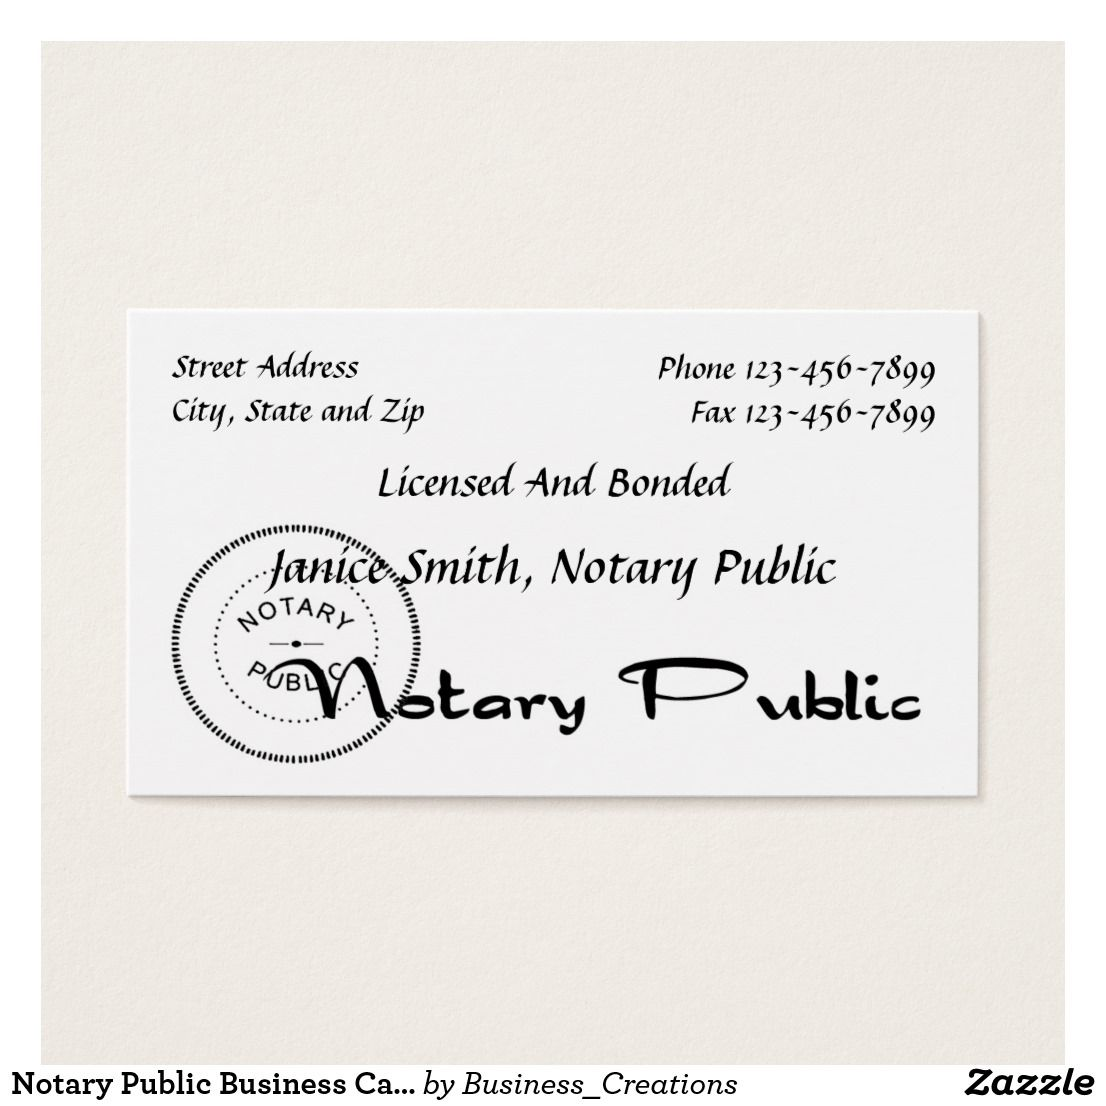 Notary Public Business Card Custom Check Out More Business Card Designs At Http Www Zazzle Com Business Creations Notary Public Business Notary Public Notary